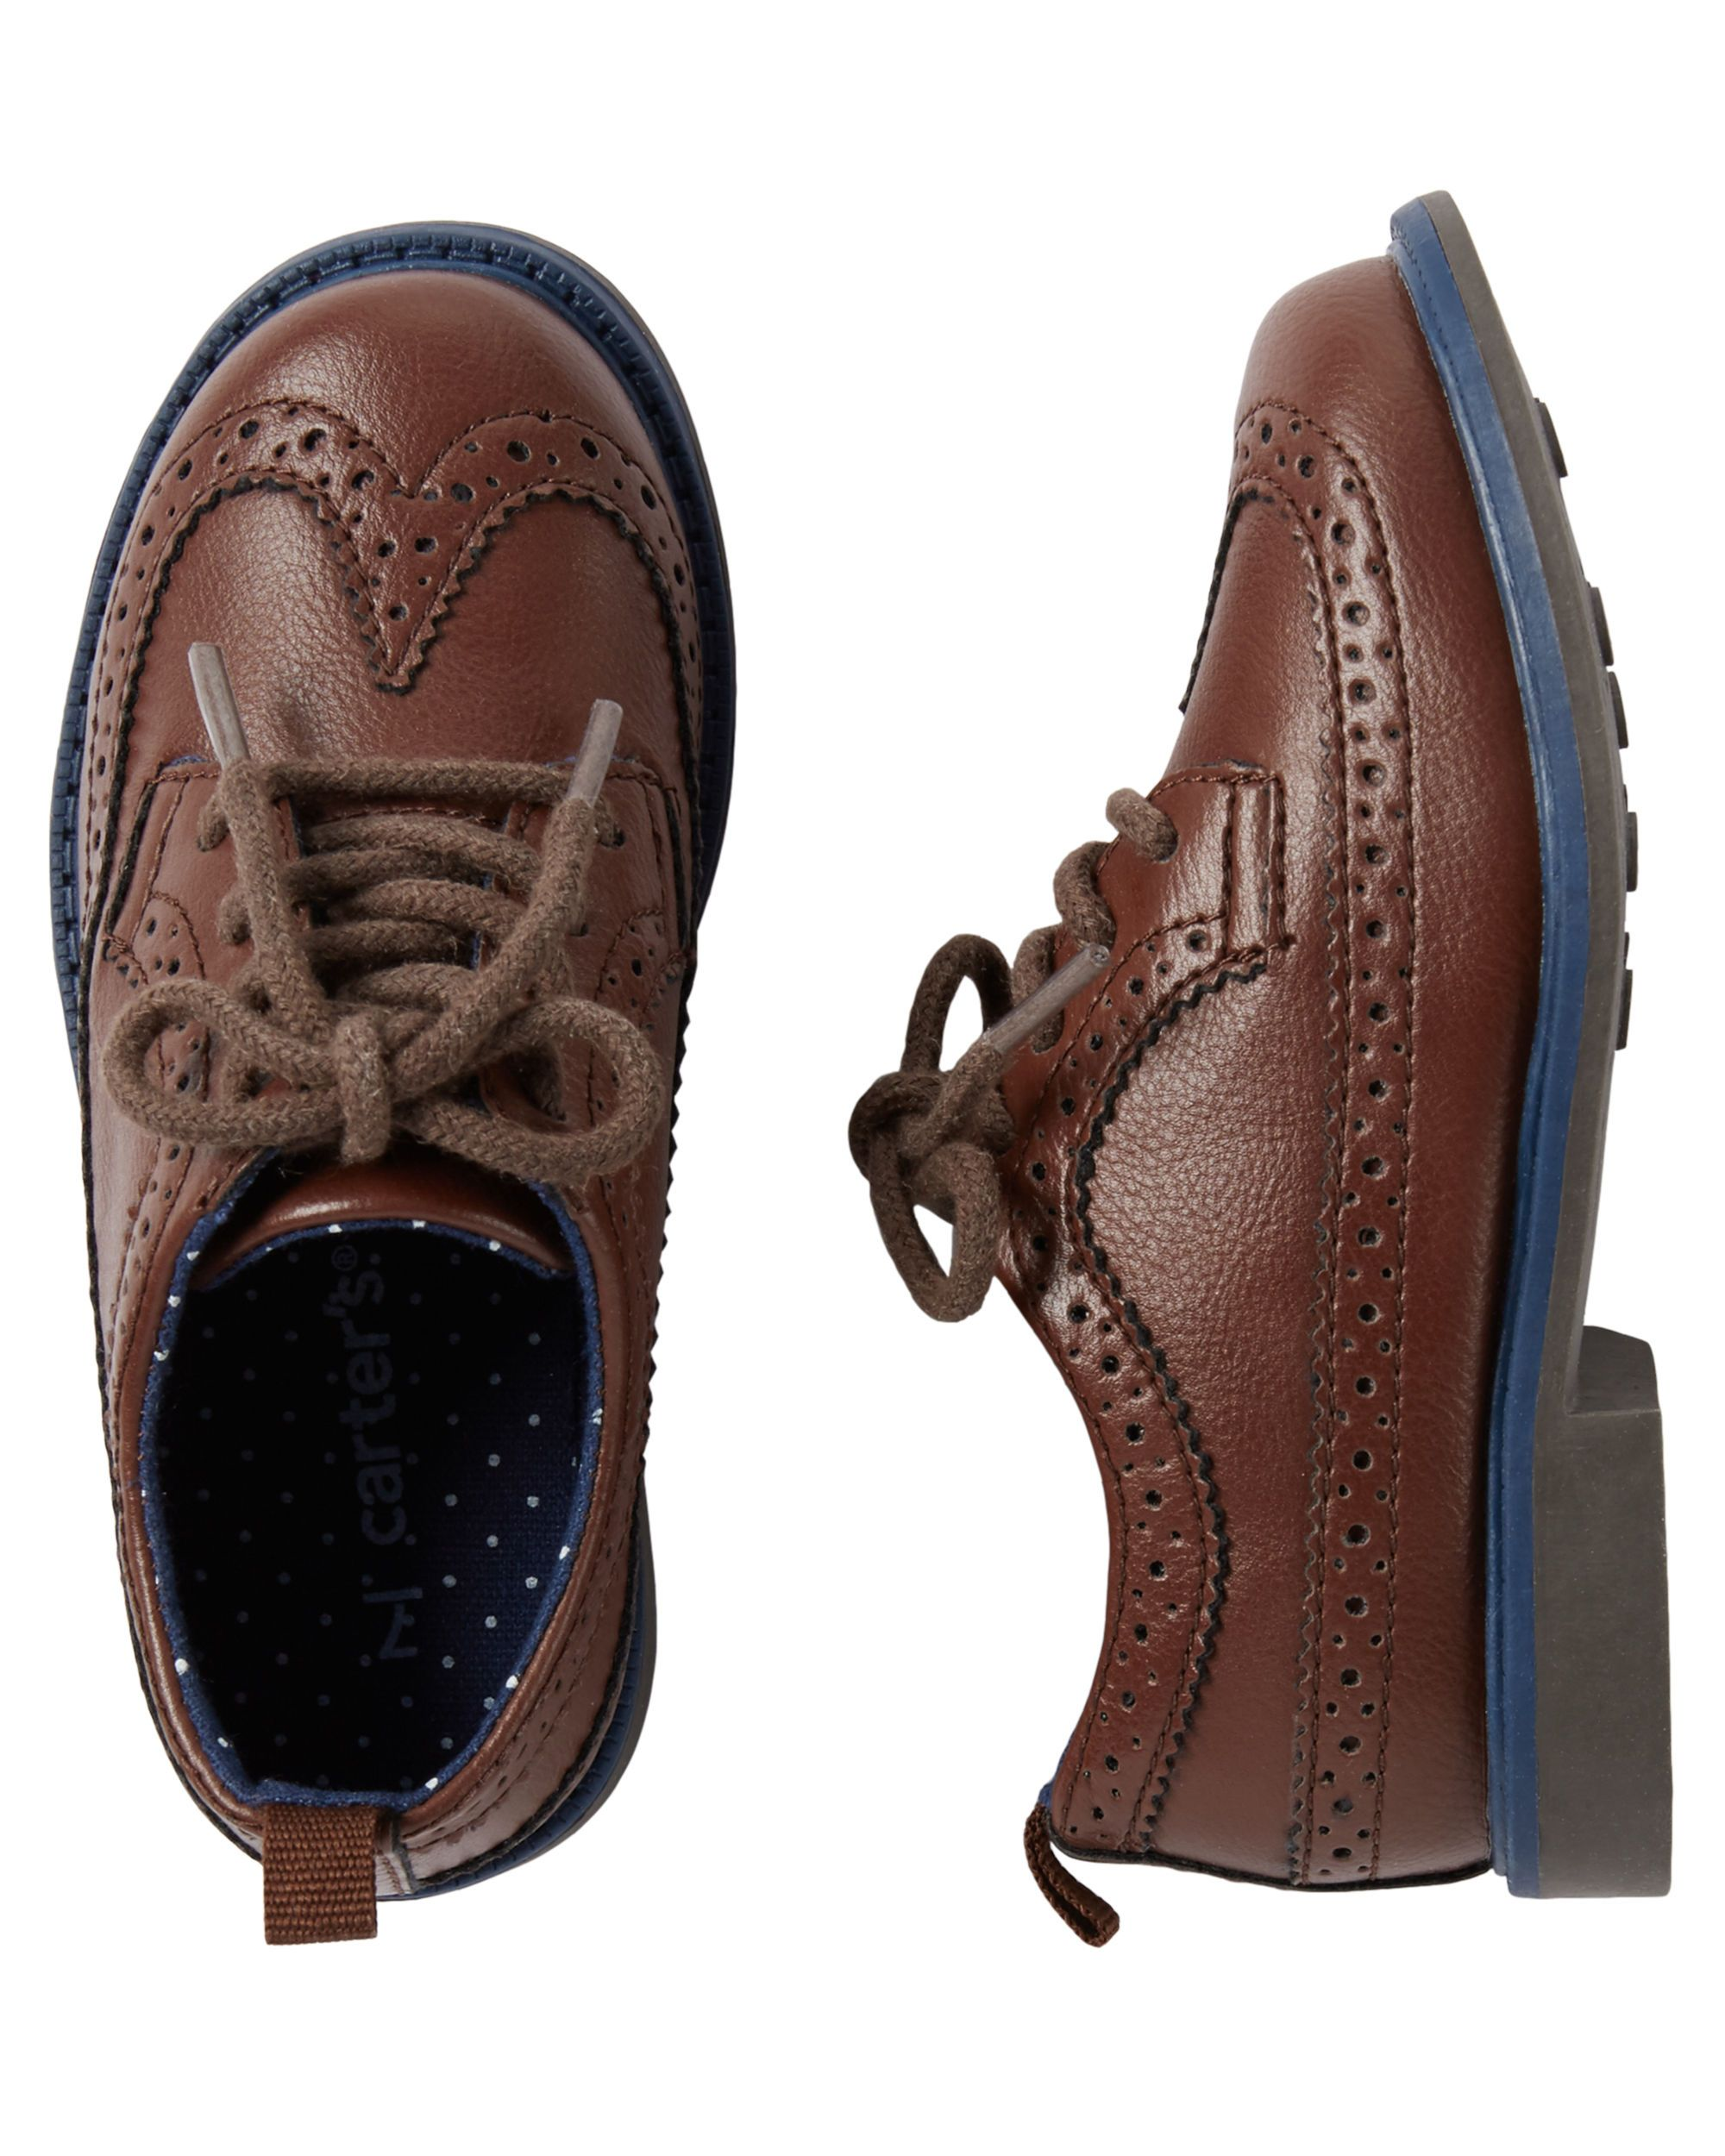 38ebb659f5acb06fea5903901403680e carter's oxford dress shoes toddler boys, babies clothes and babies,Childrens Clothes And Shoes